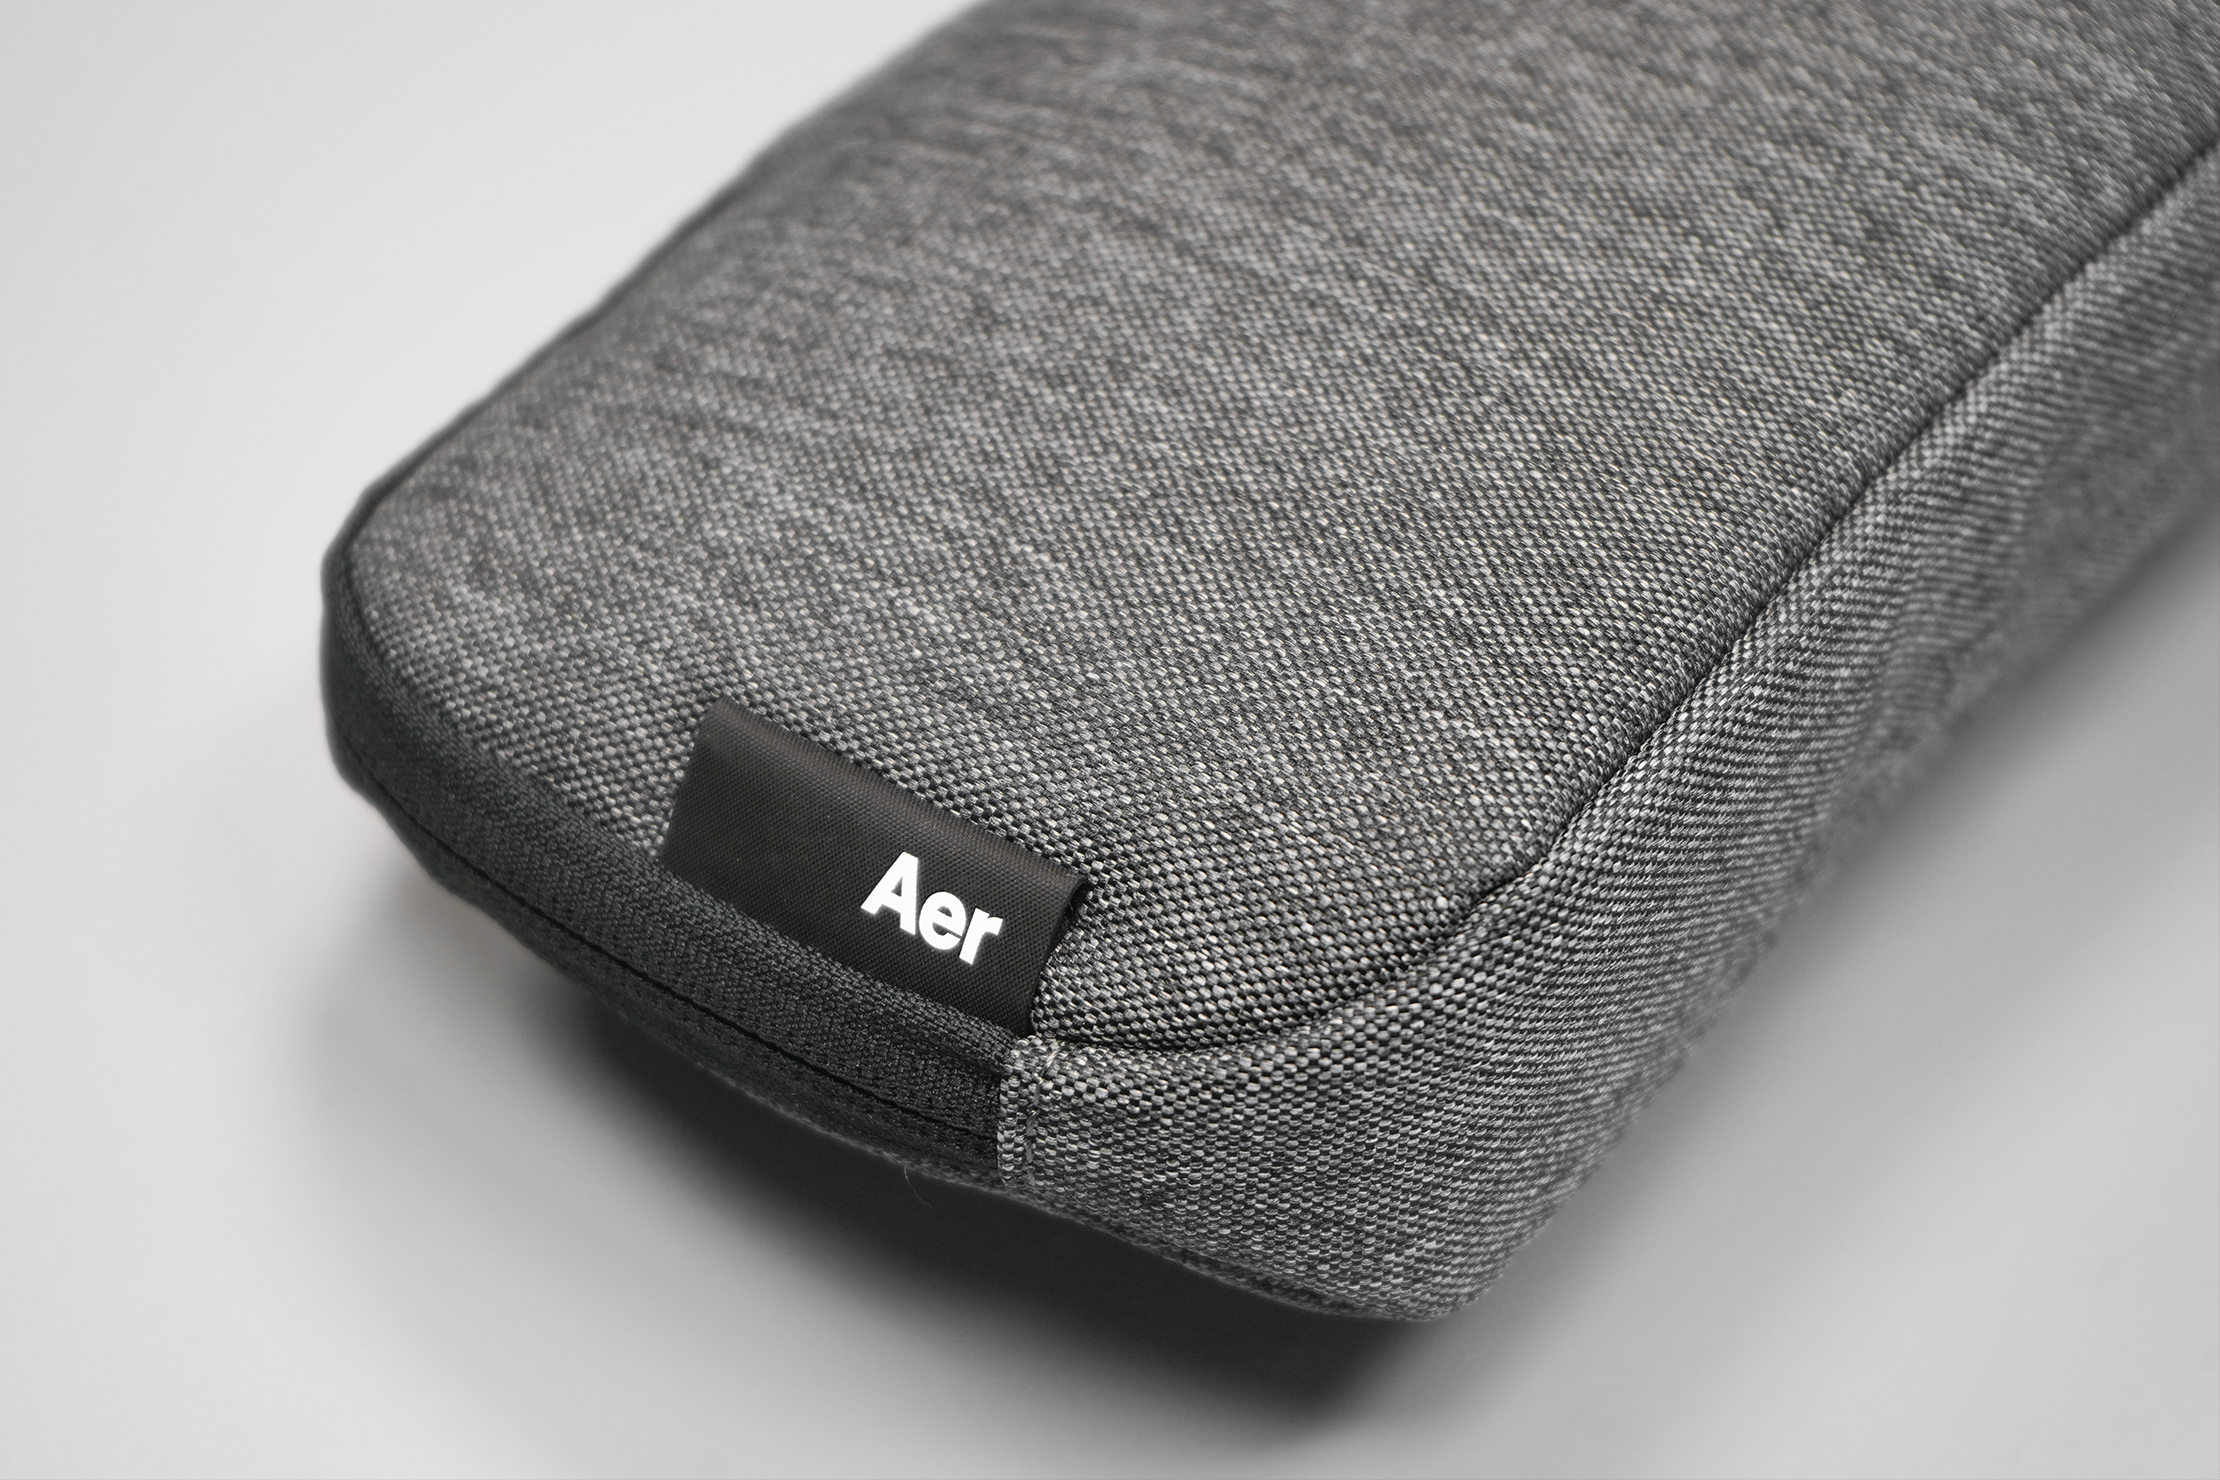 Aer Slim Pouch | This minimalist tag apes Aer's retail store signage